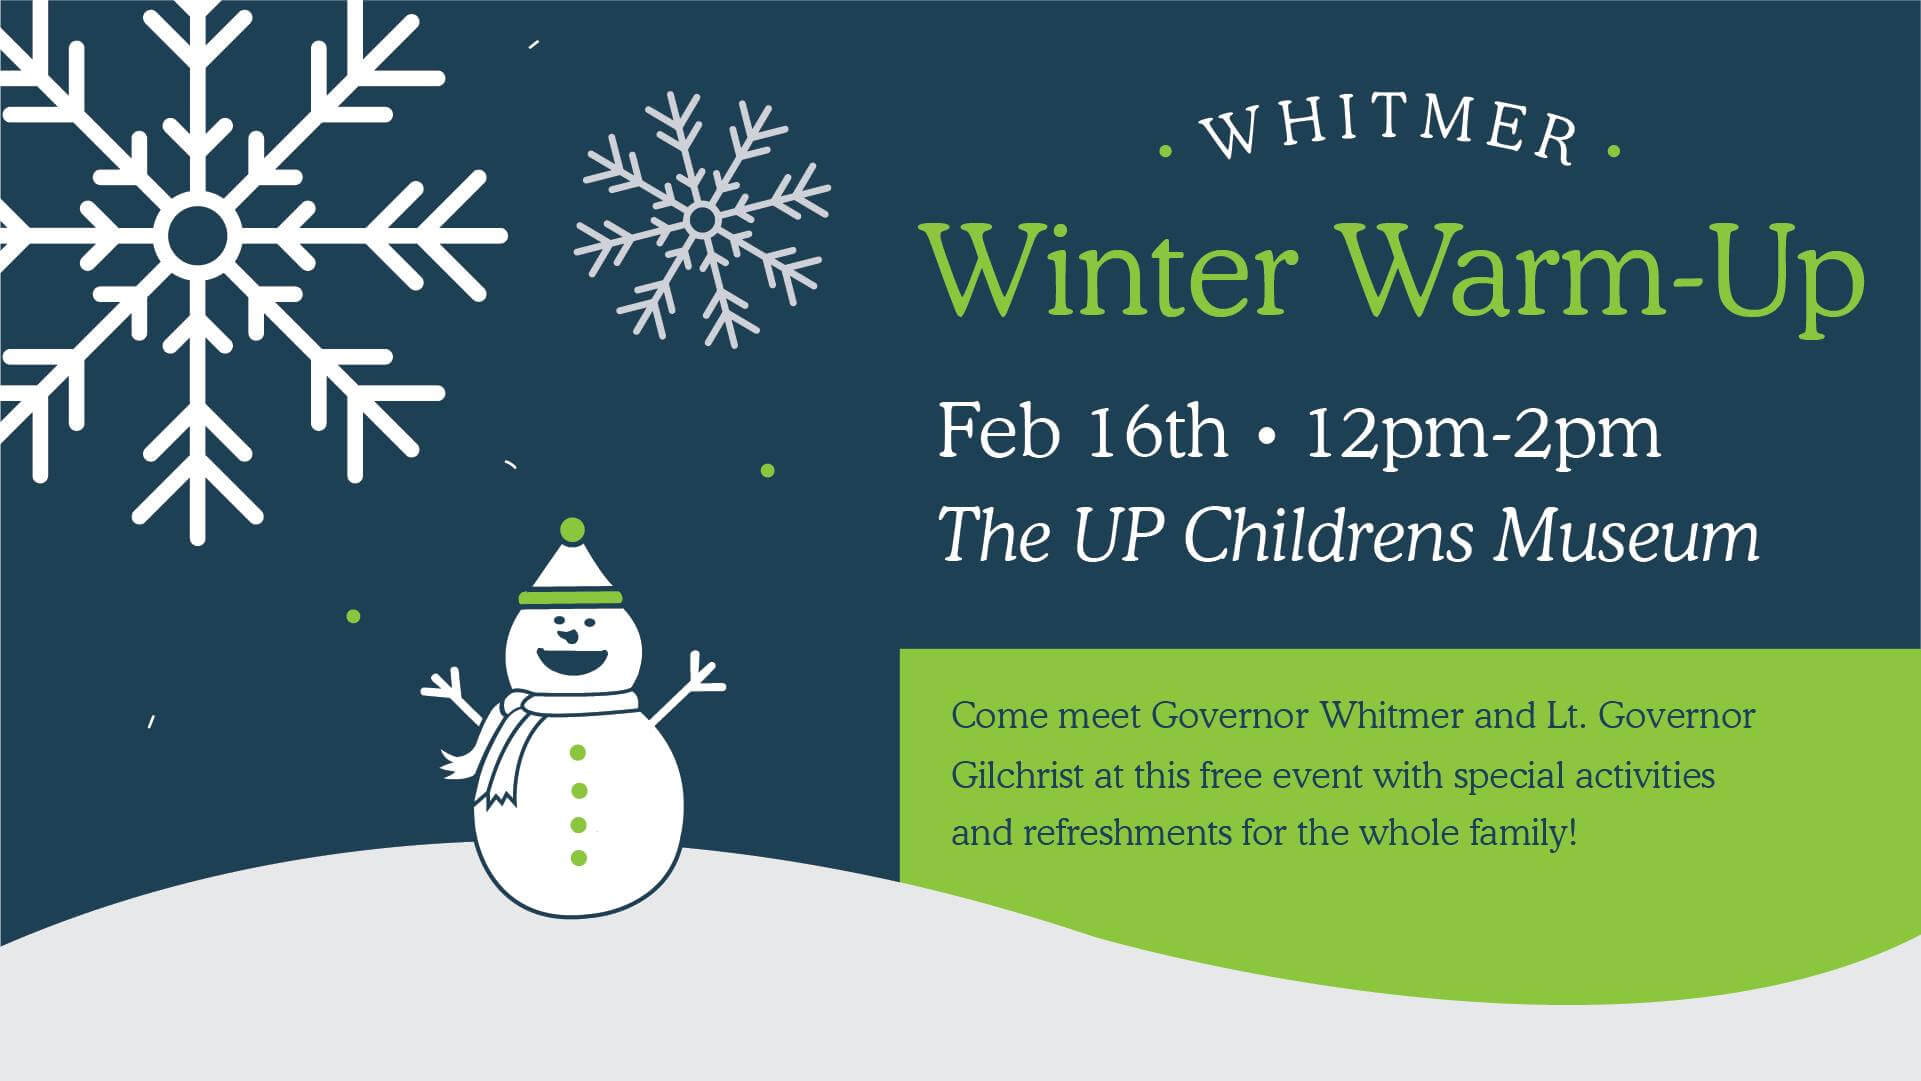 Whitmer Winter Warm-up. Feb. 16th. 12pm -2pm. The UP Children's Museum. Come meet Governor Whitmer and Lt. Governor Gilchrist at this free event with special activities and refreshments for the whole family!